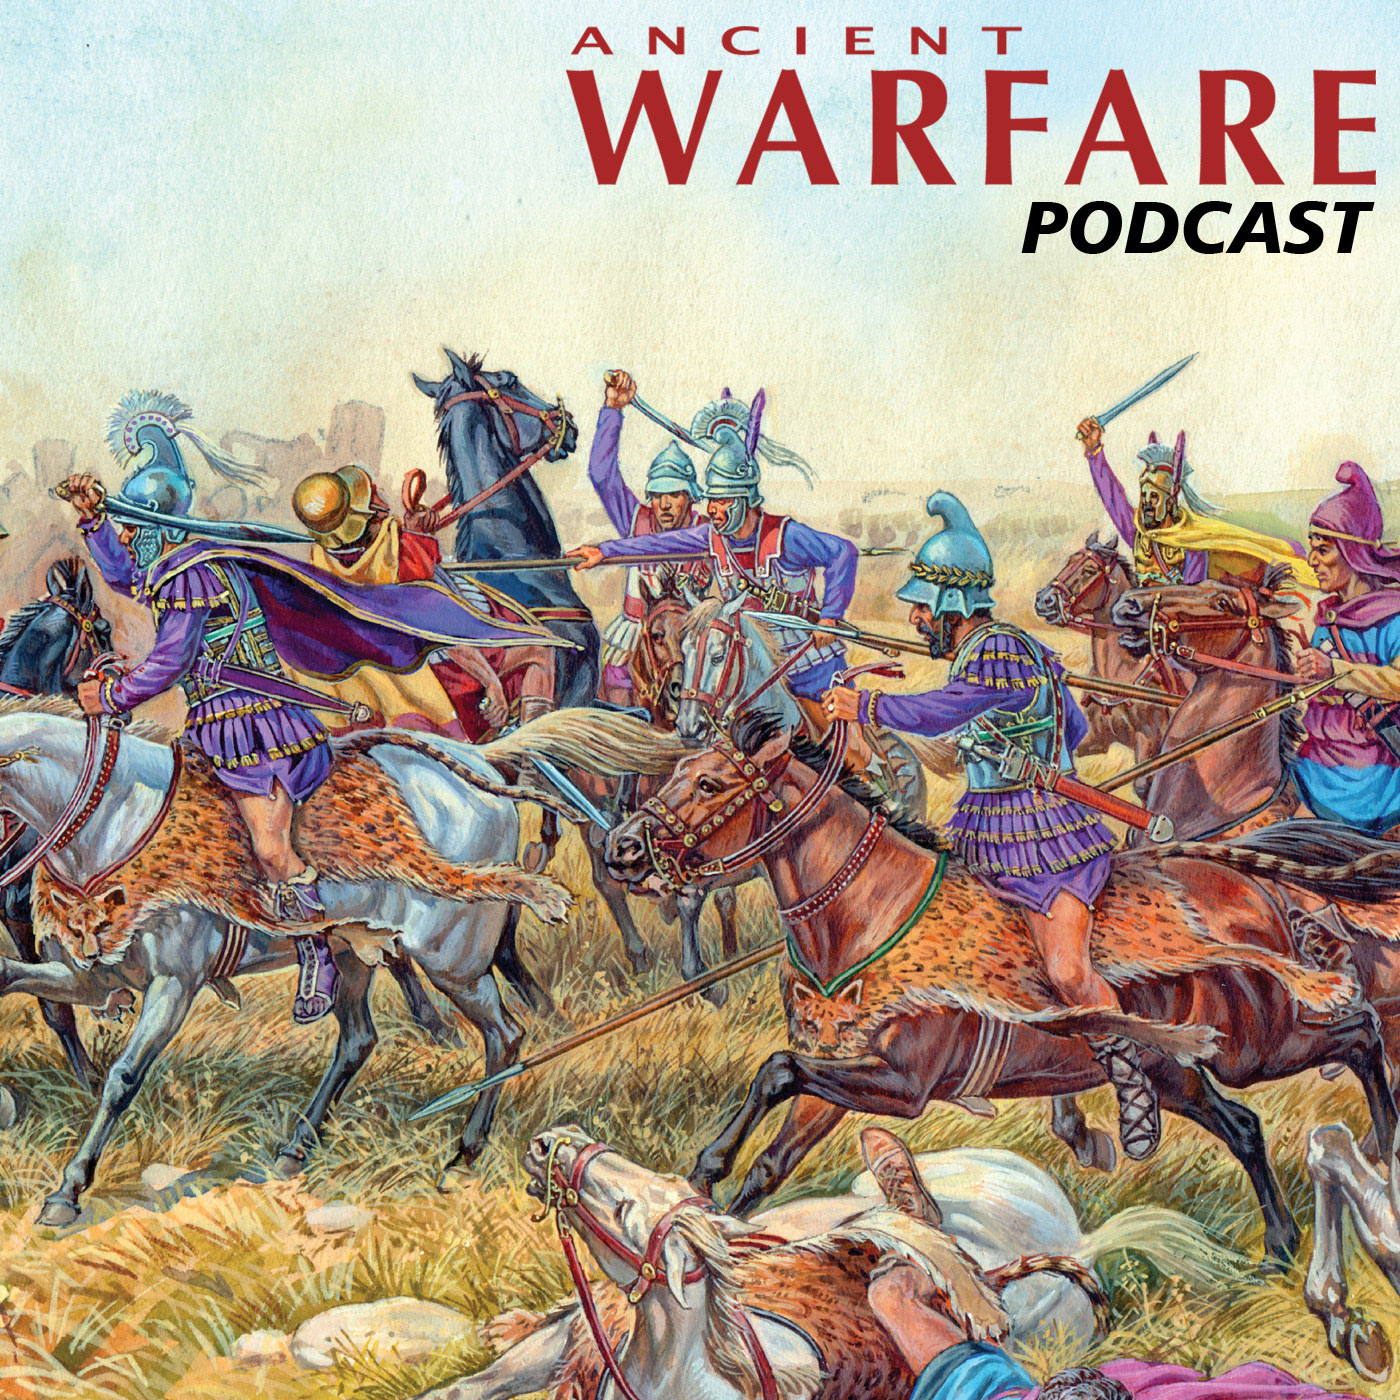 Wars at the edge of empires